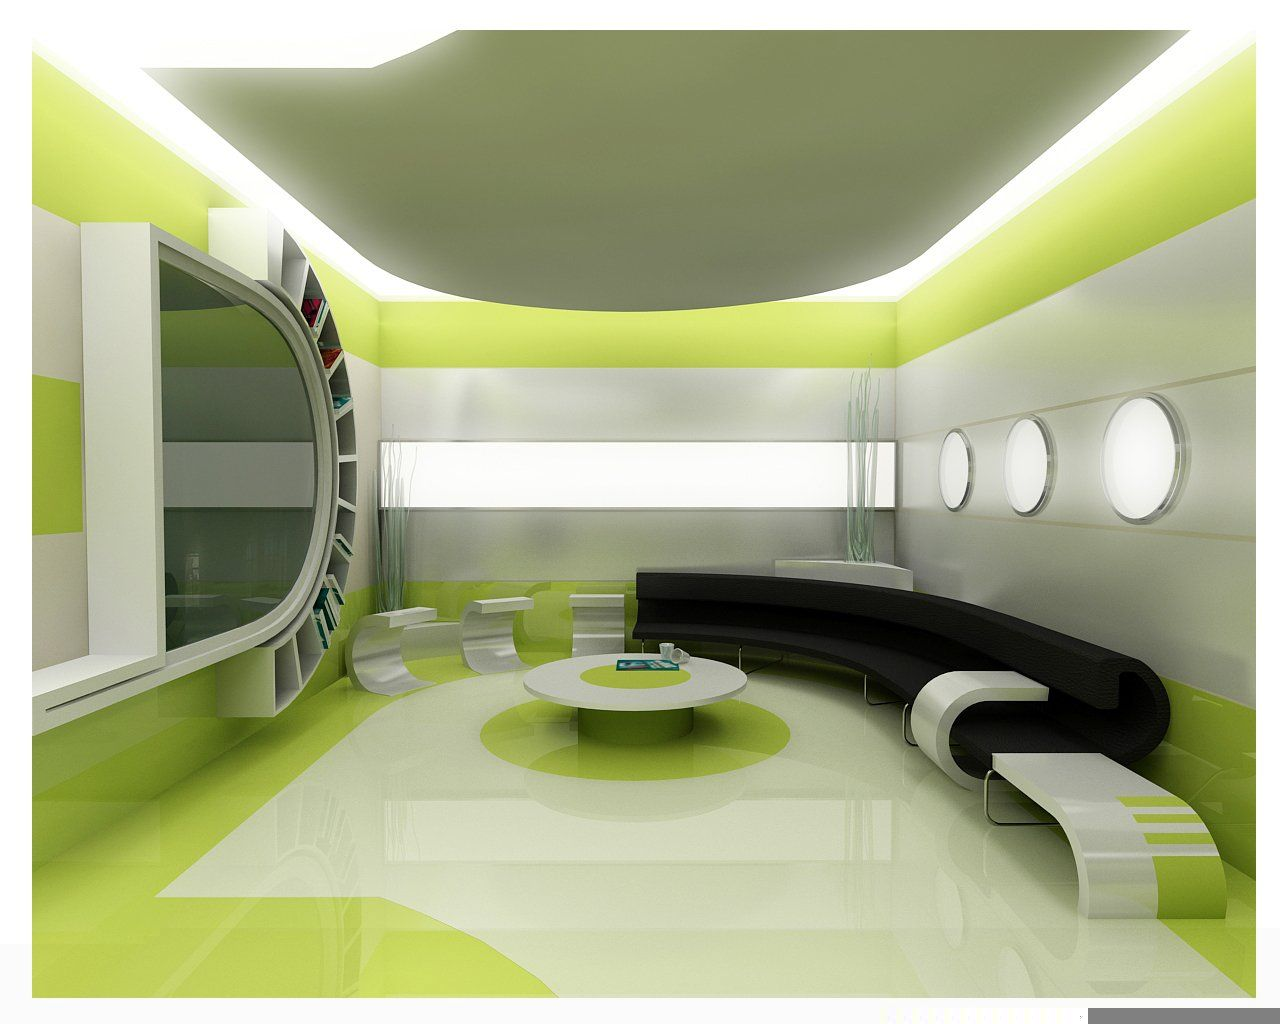 Best college for interior design course for Interior decoration designs course